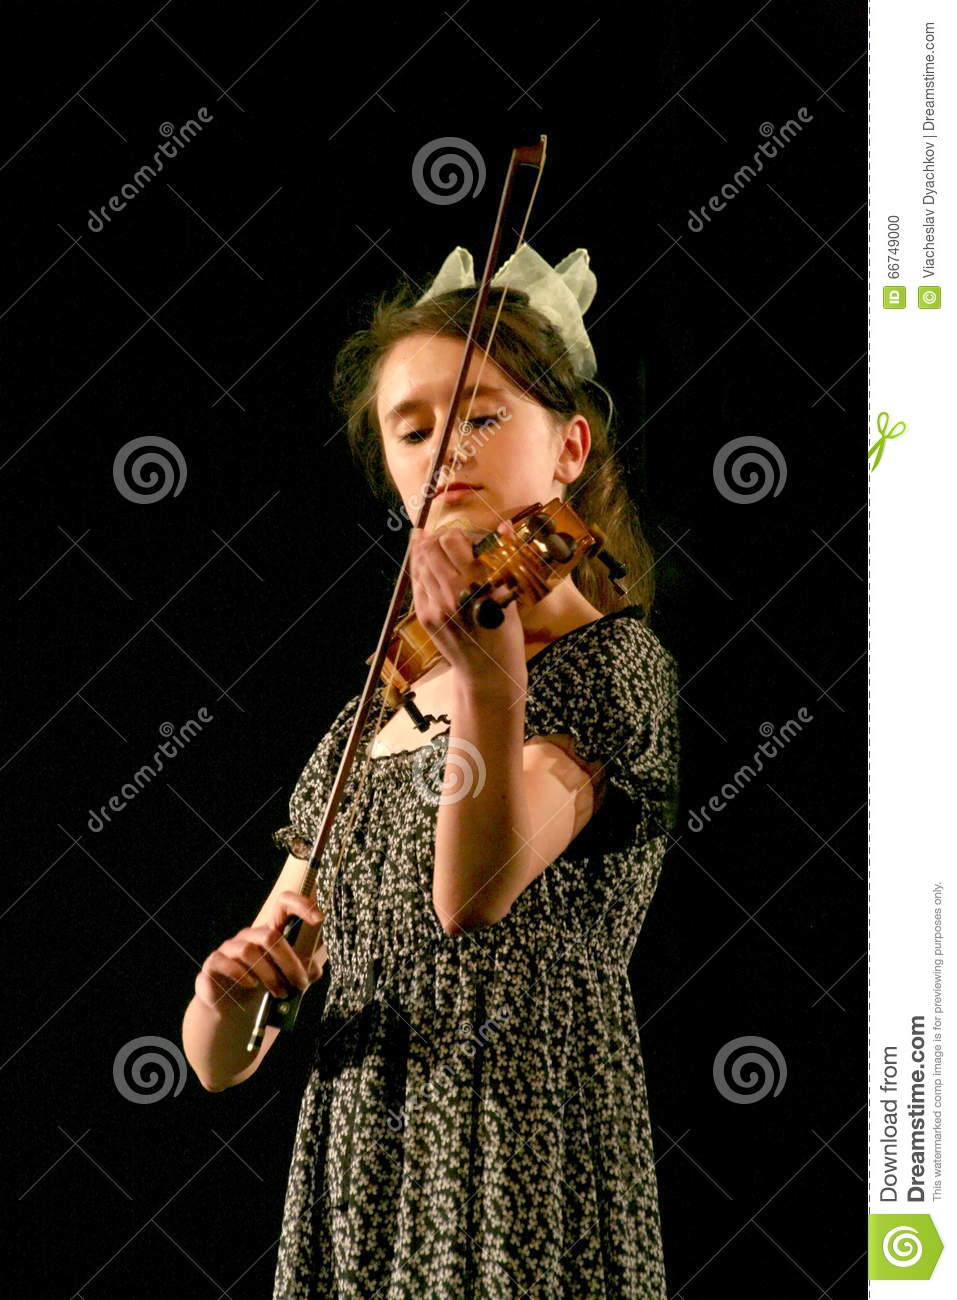 Beautiful Russian Jewish girl, a friend of the Soviet soldier playing the violin.